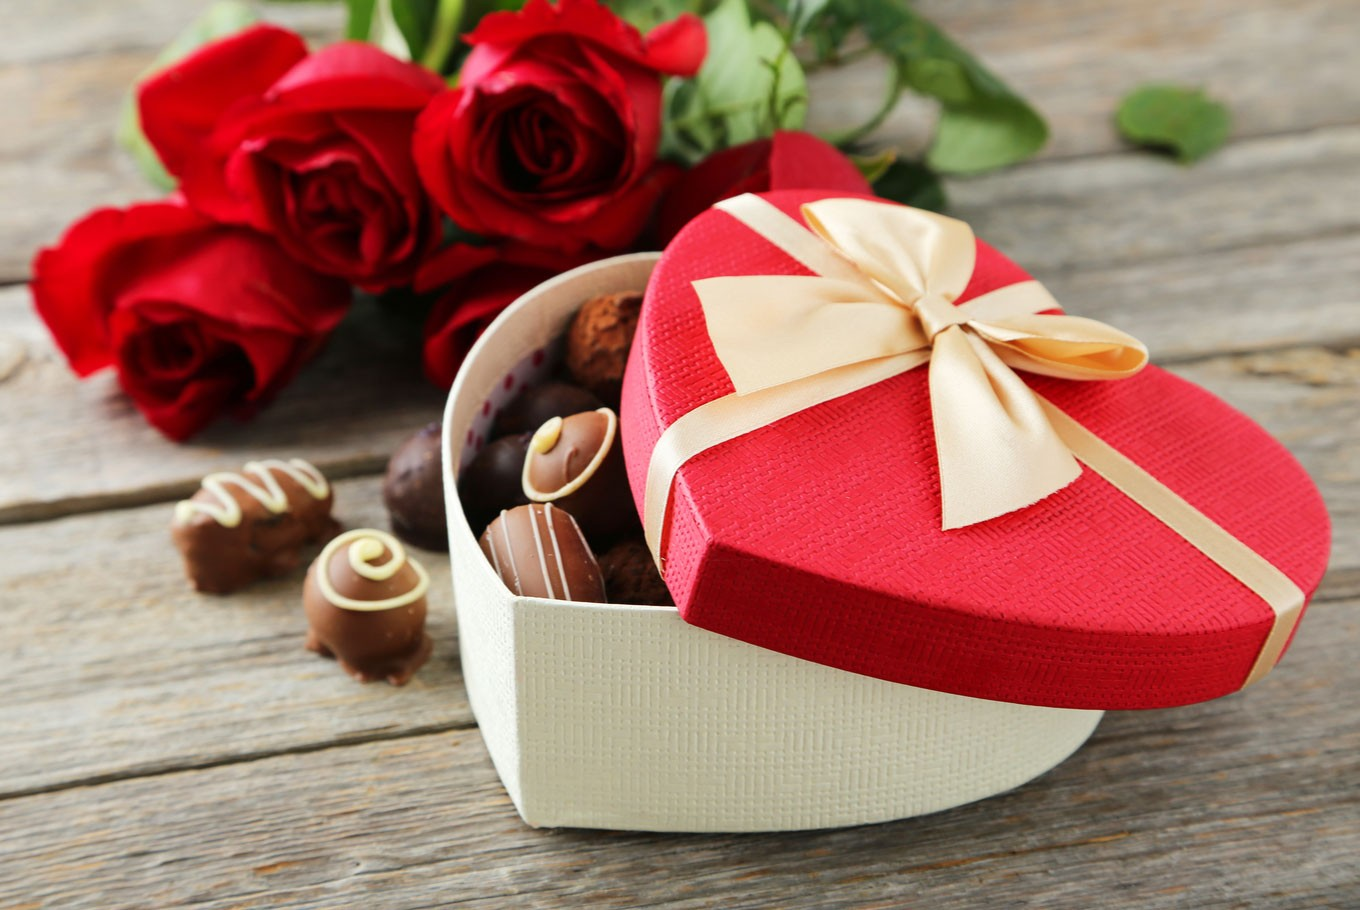 Chocolate, flower sales expected to soar ahead of ...